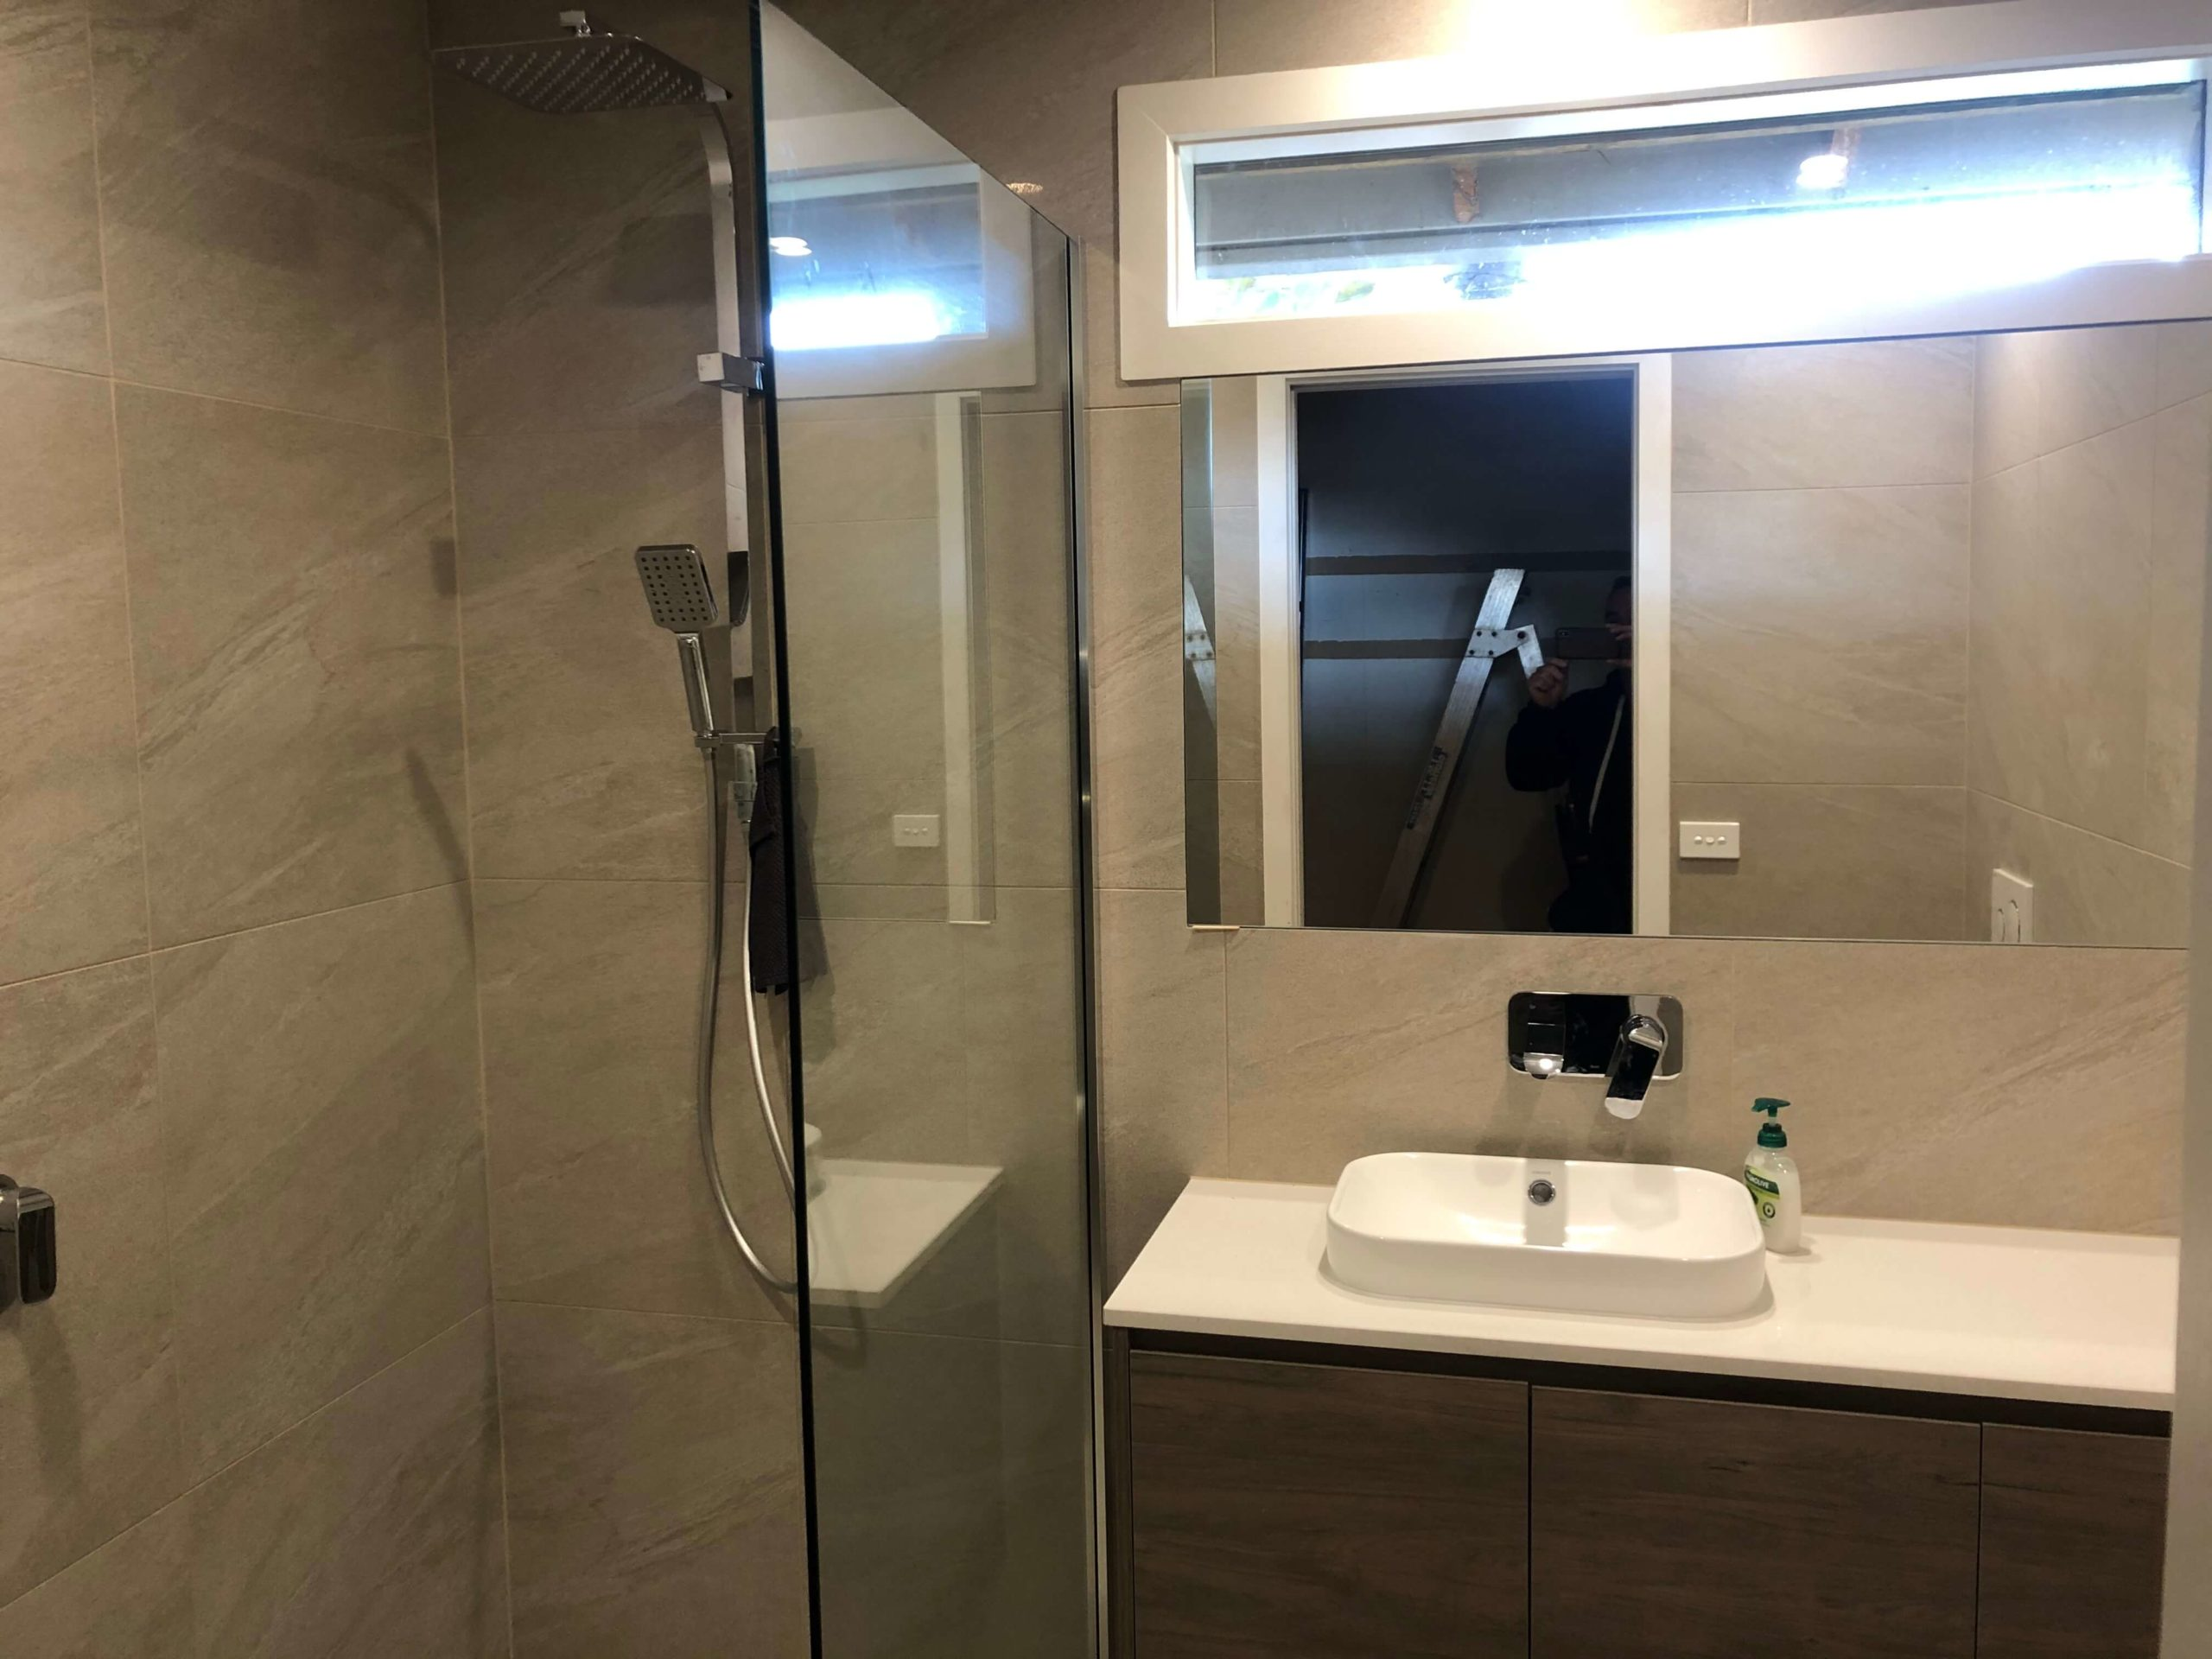 Freestanding Toughened Safety Glass Shower Screen with Wall Channel